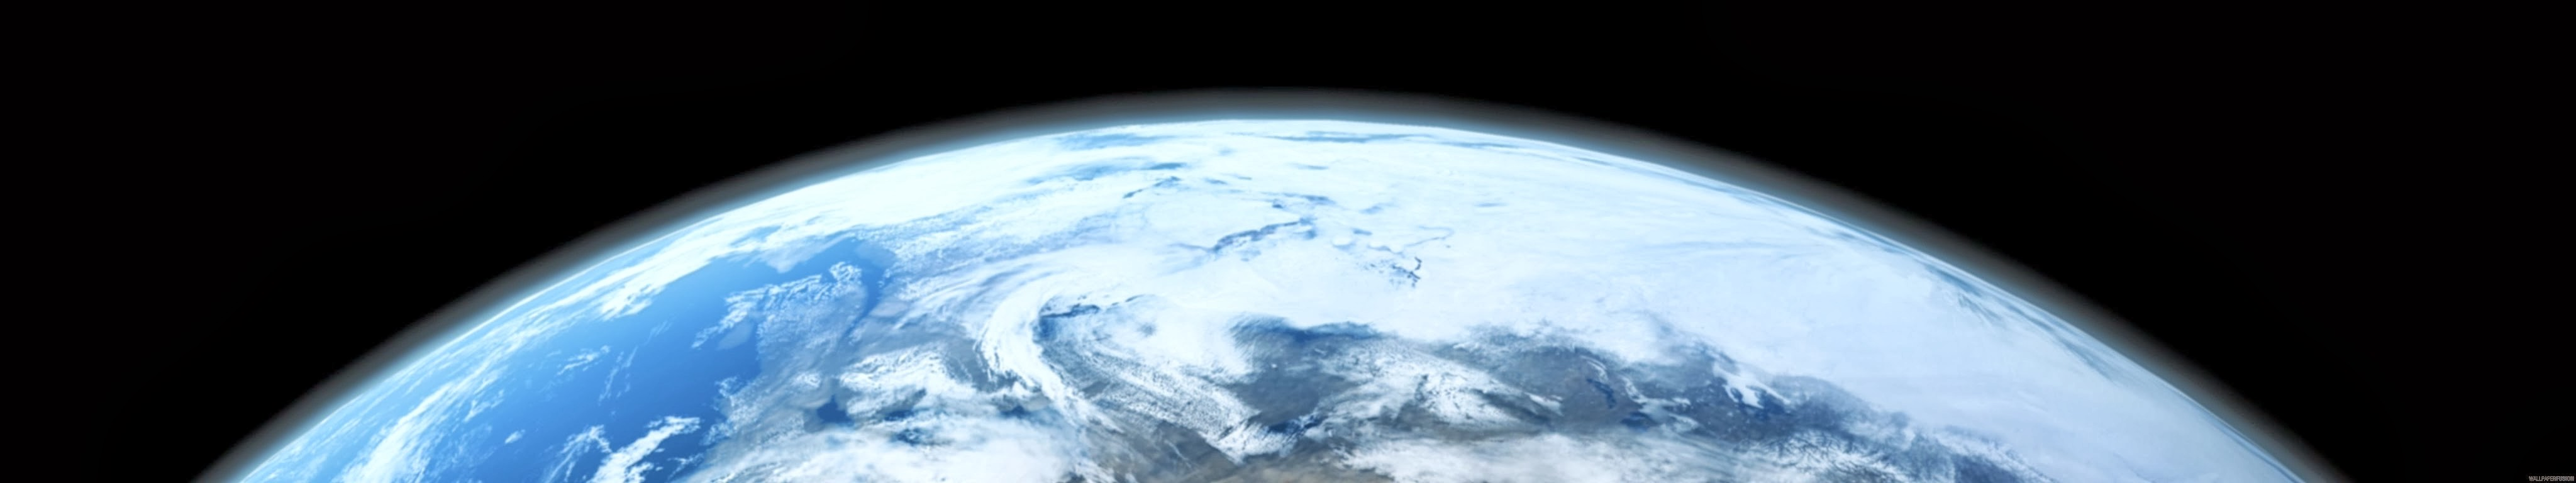 WallpaperFusion Earth From Beyond Original 5760x1080 Wjpg 4096x768